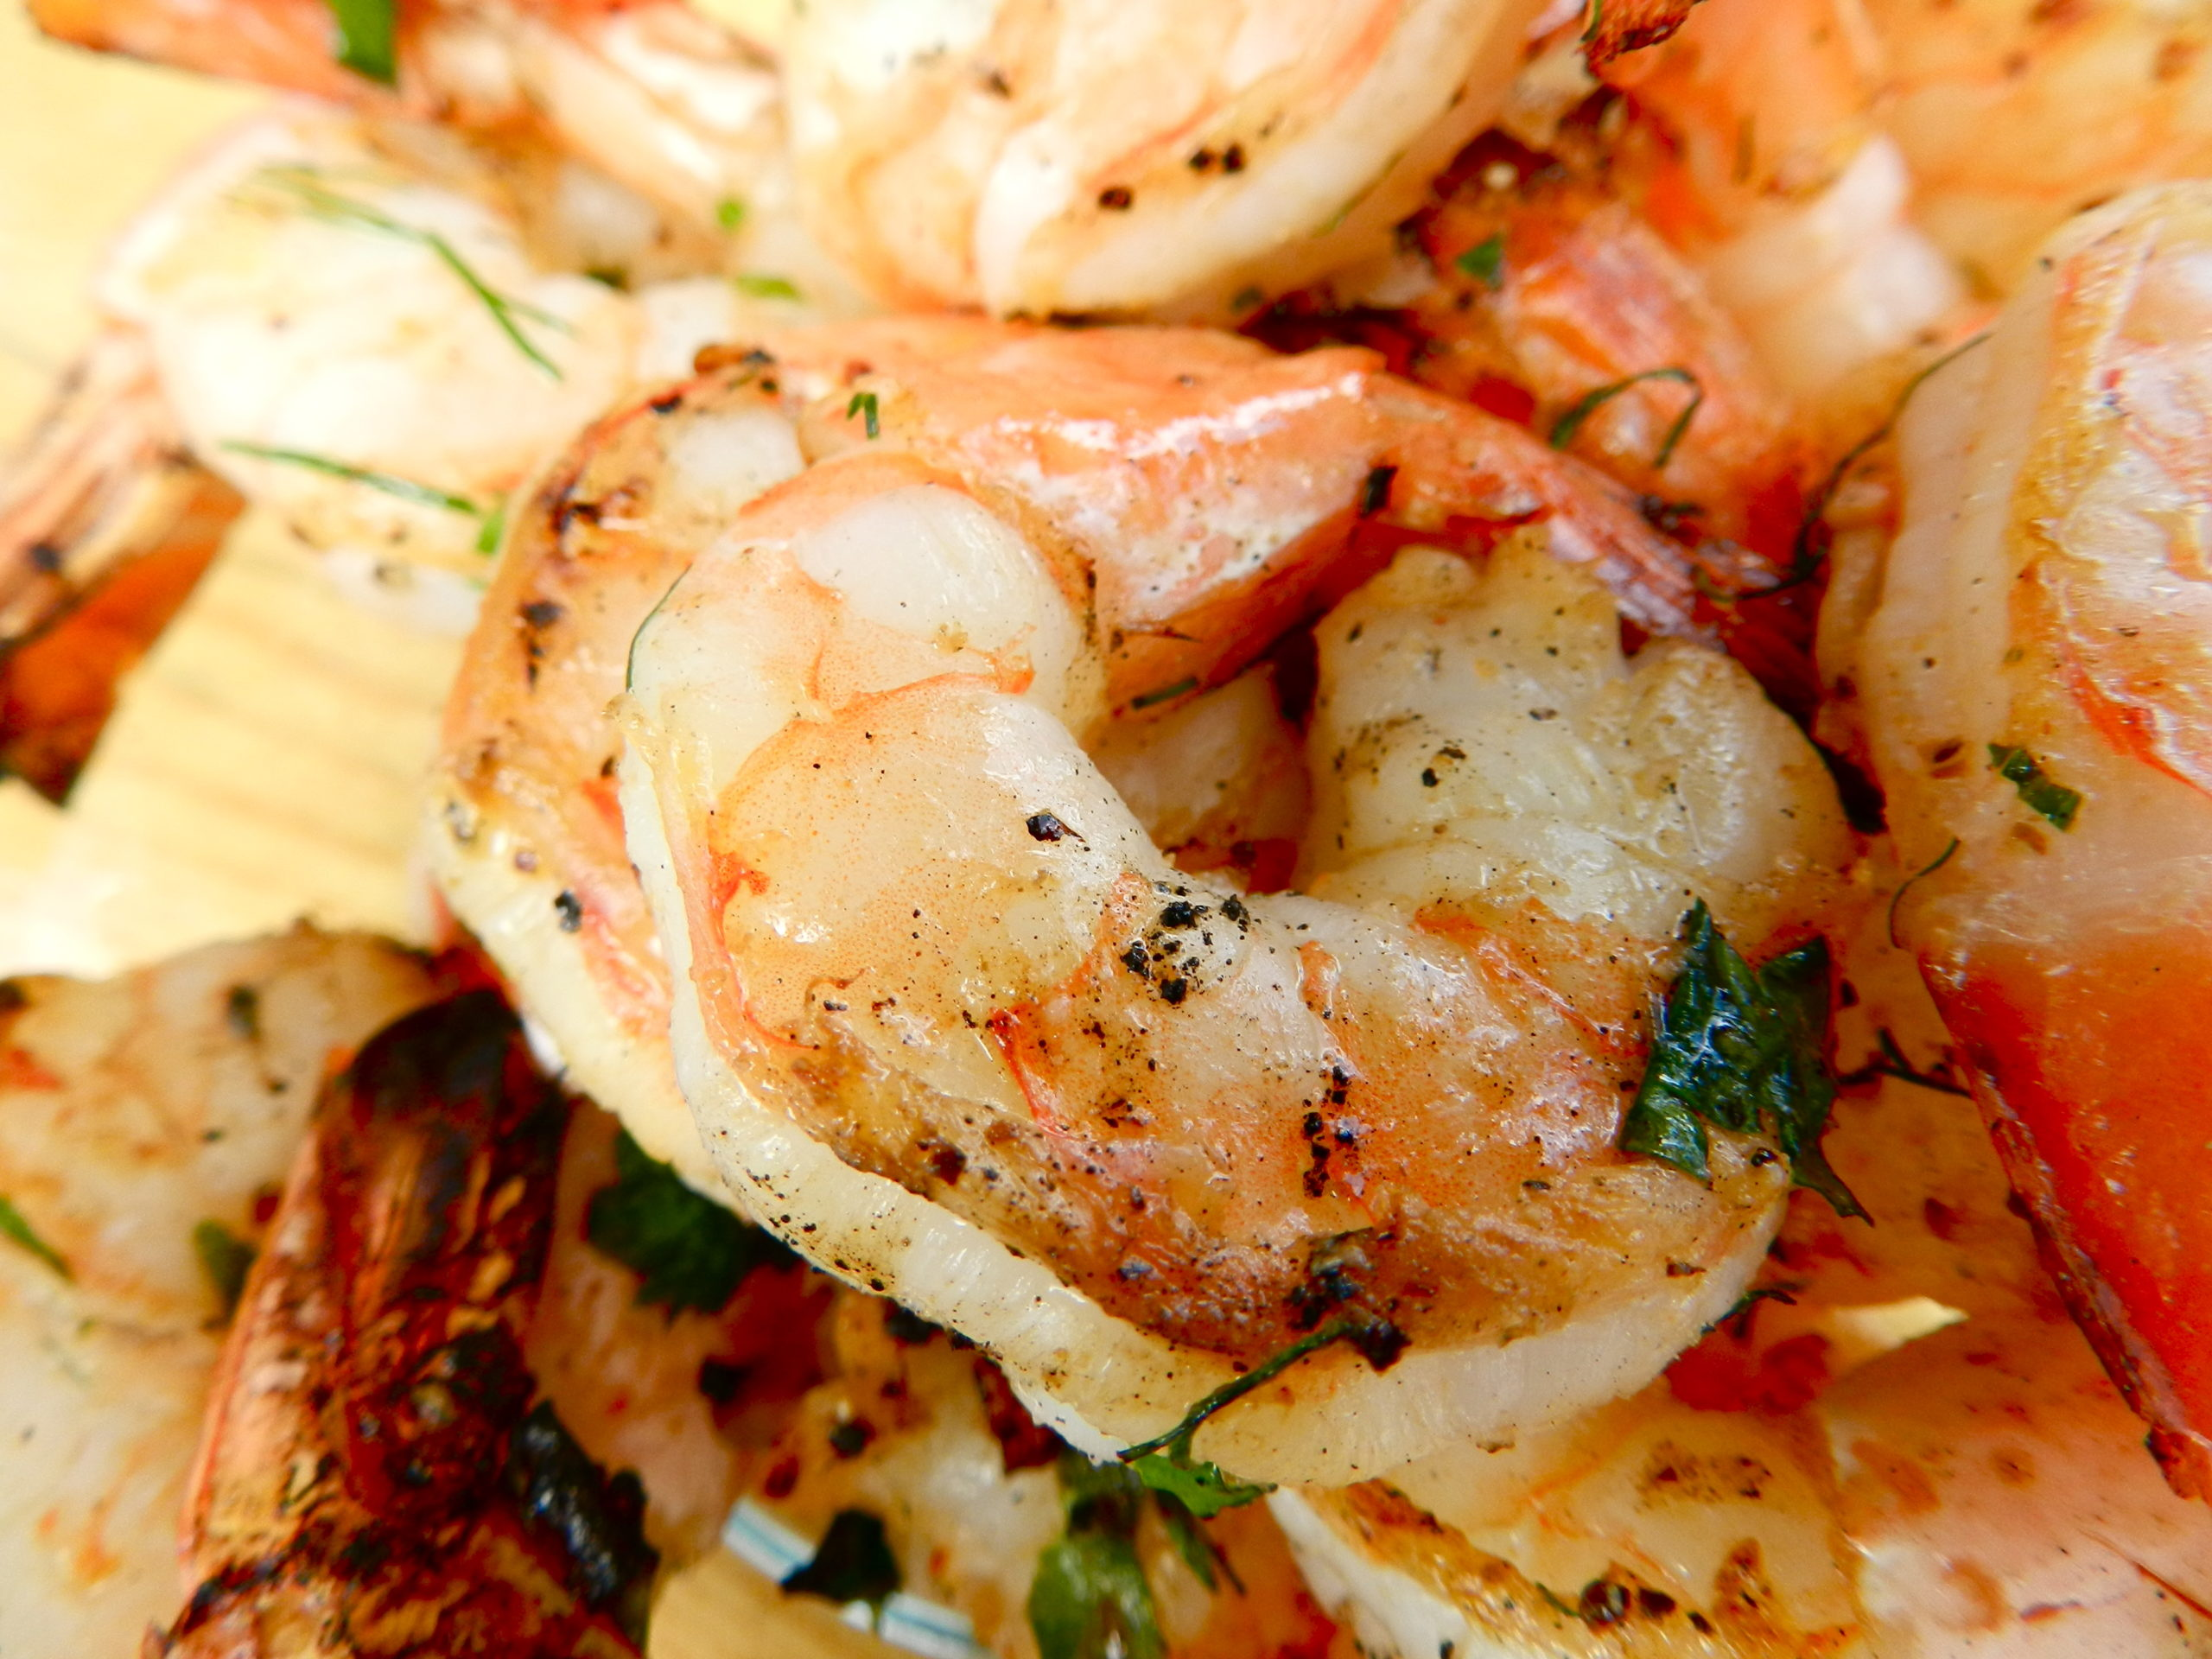 SPICY SHRIMP MARINADE